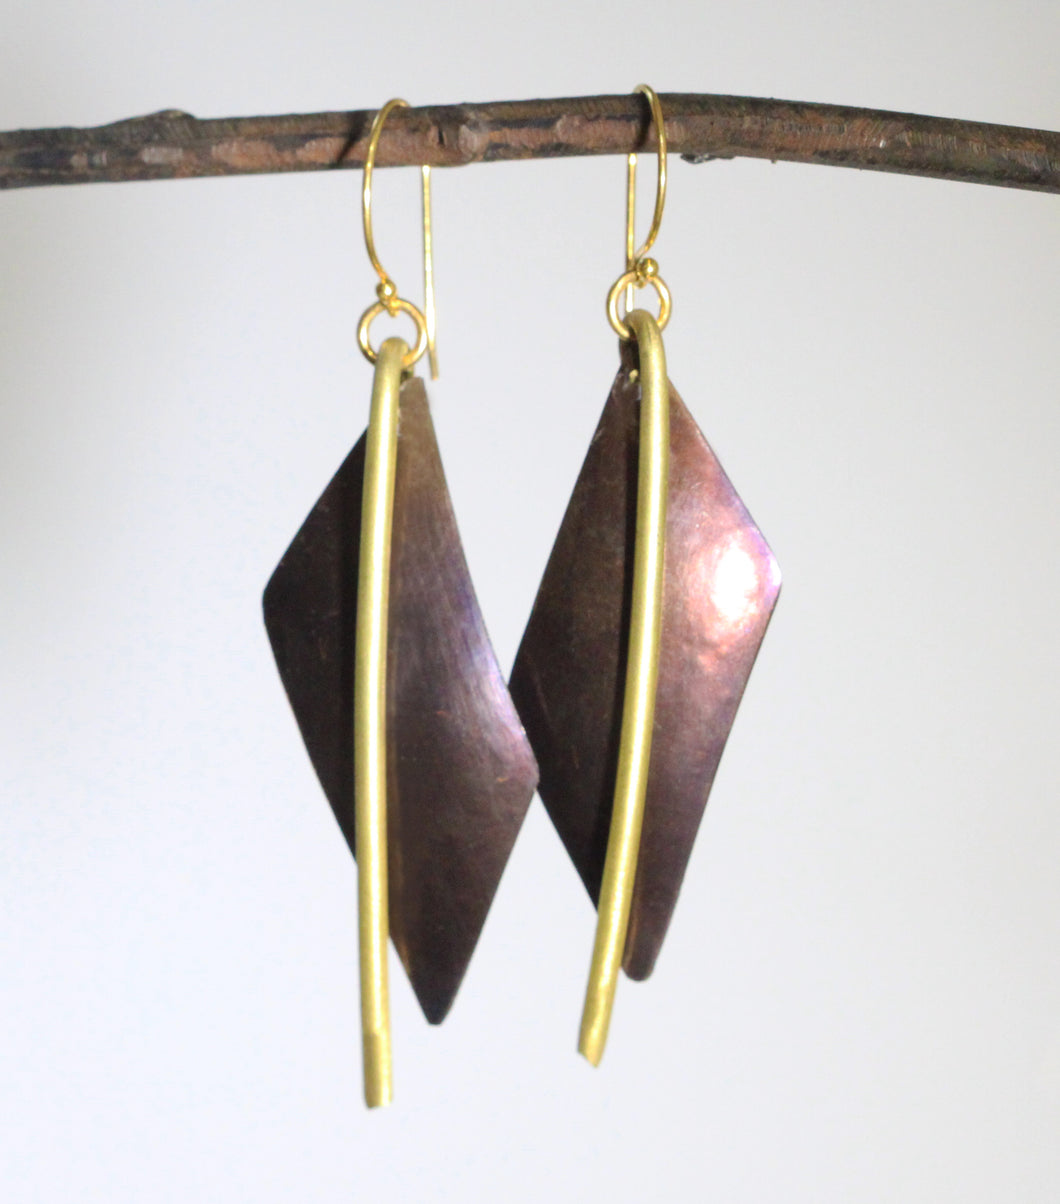 Vertical Drop Earrings - Dennis Higgins Jewelry